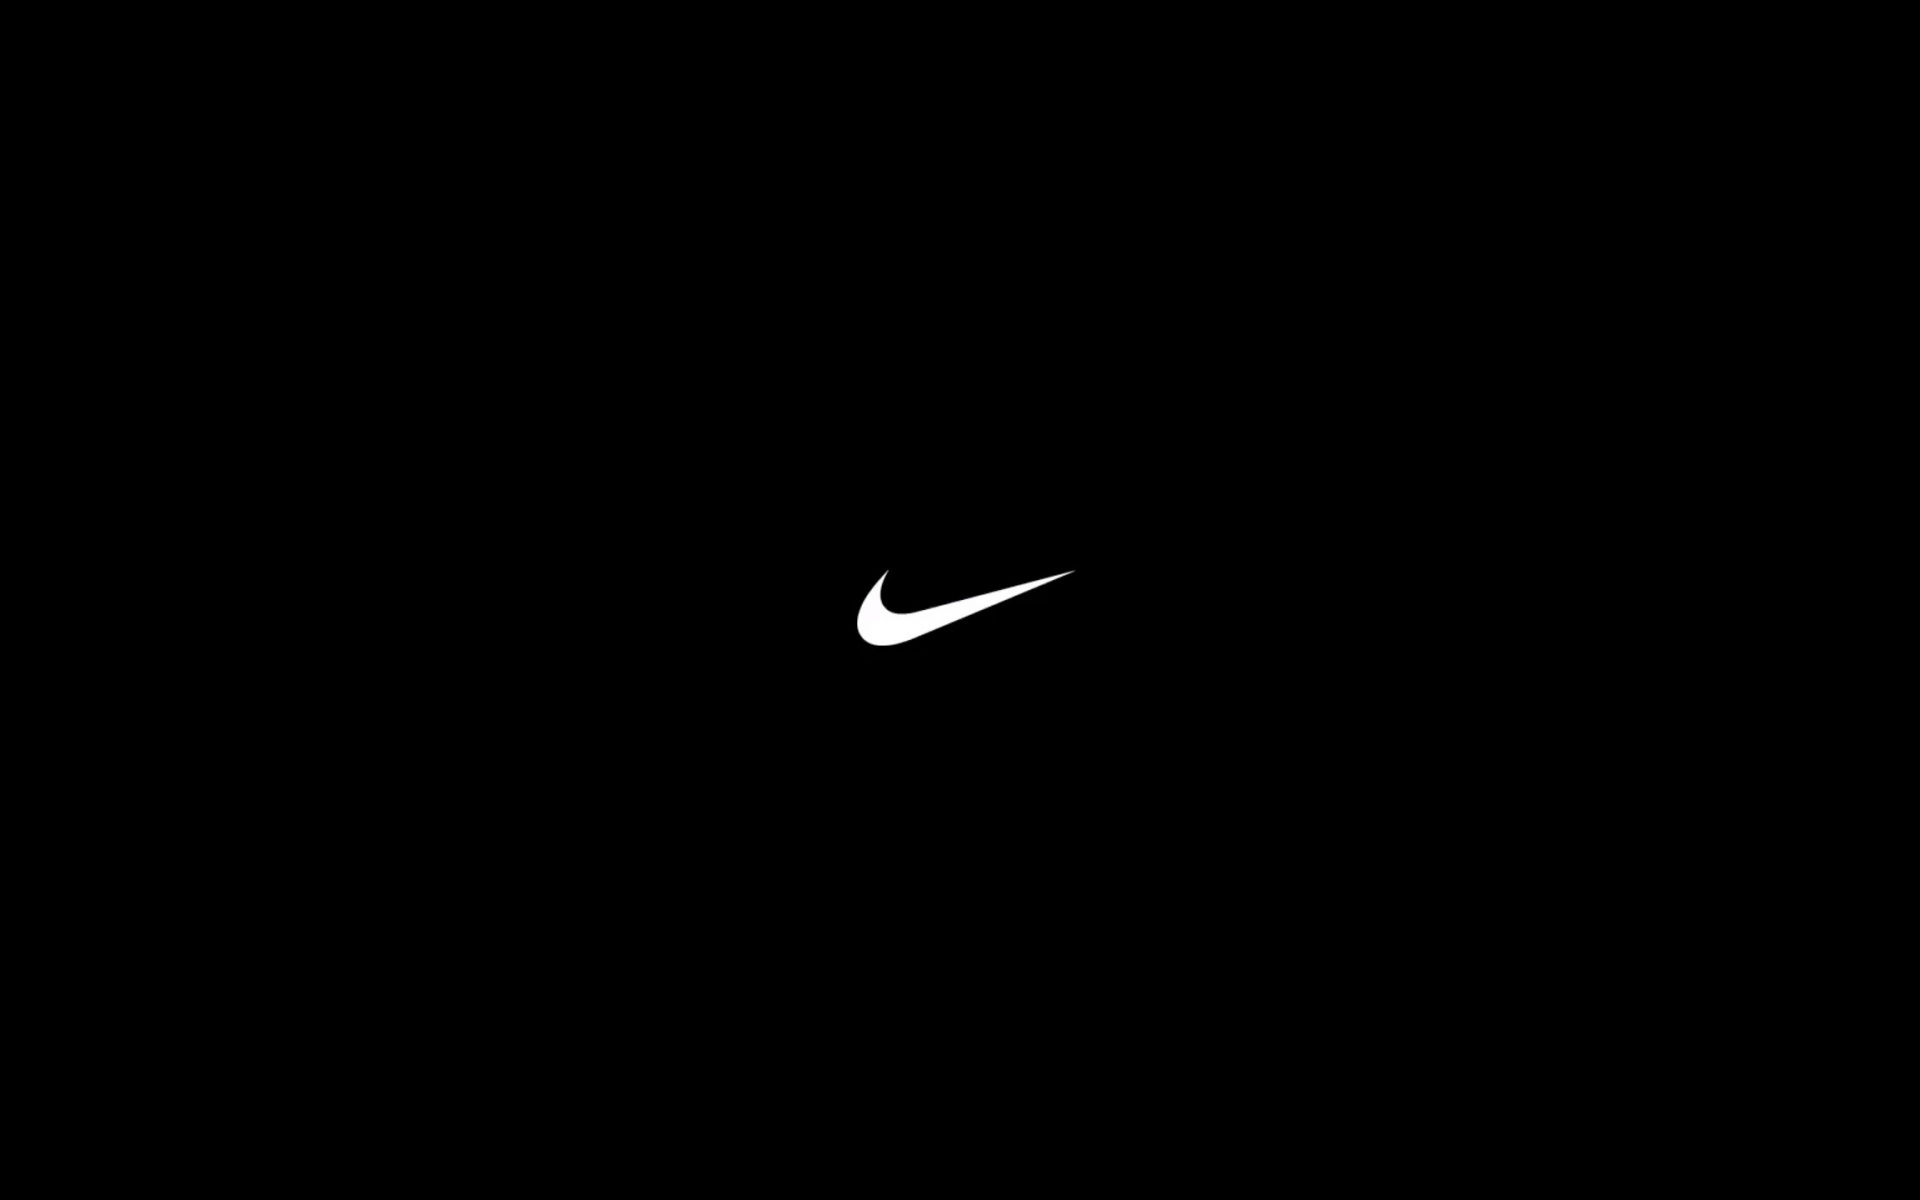 Must see Wallpaper Nike Aesthetic - nike-swoosh_wallpapers_46580_1920x1200  You Should Have_41659.jpg